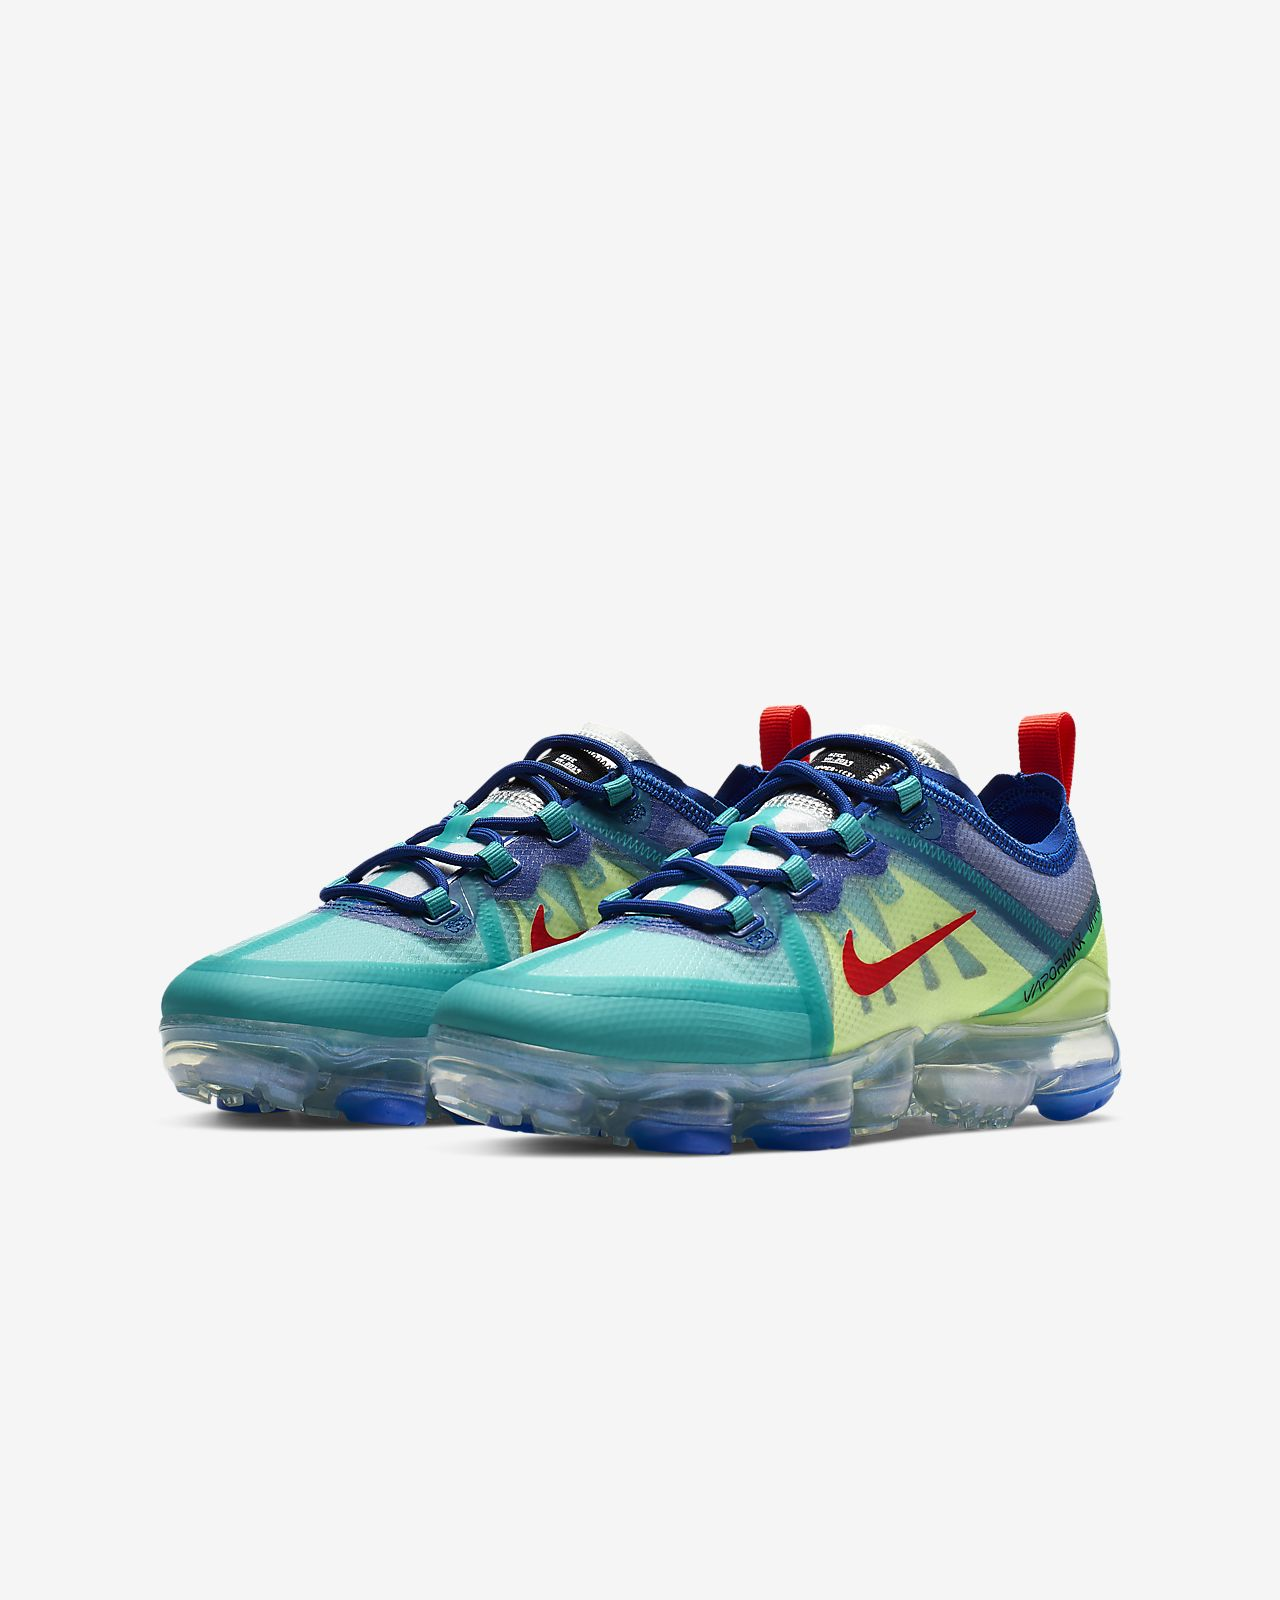 748c0447f8 Nike Air VaporMax 2019 Big Kids' Shoe